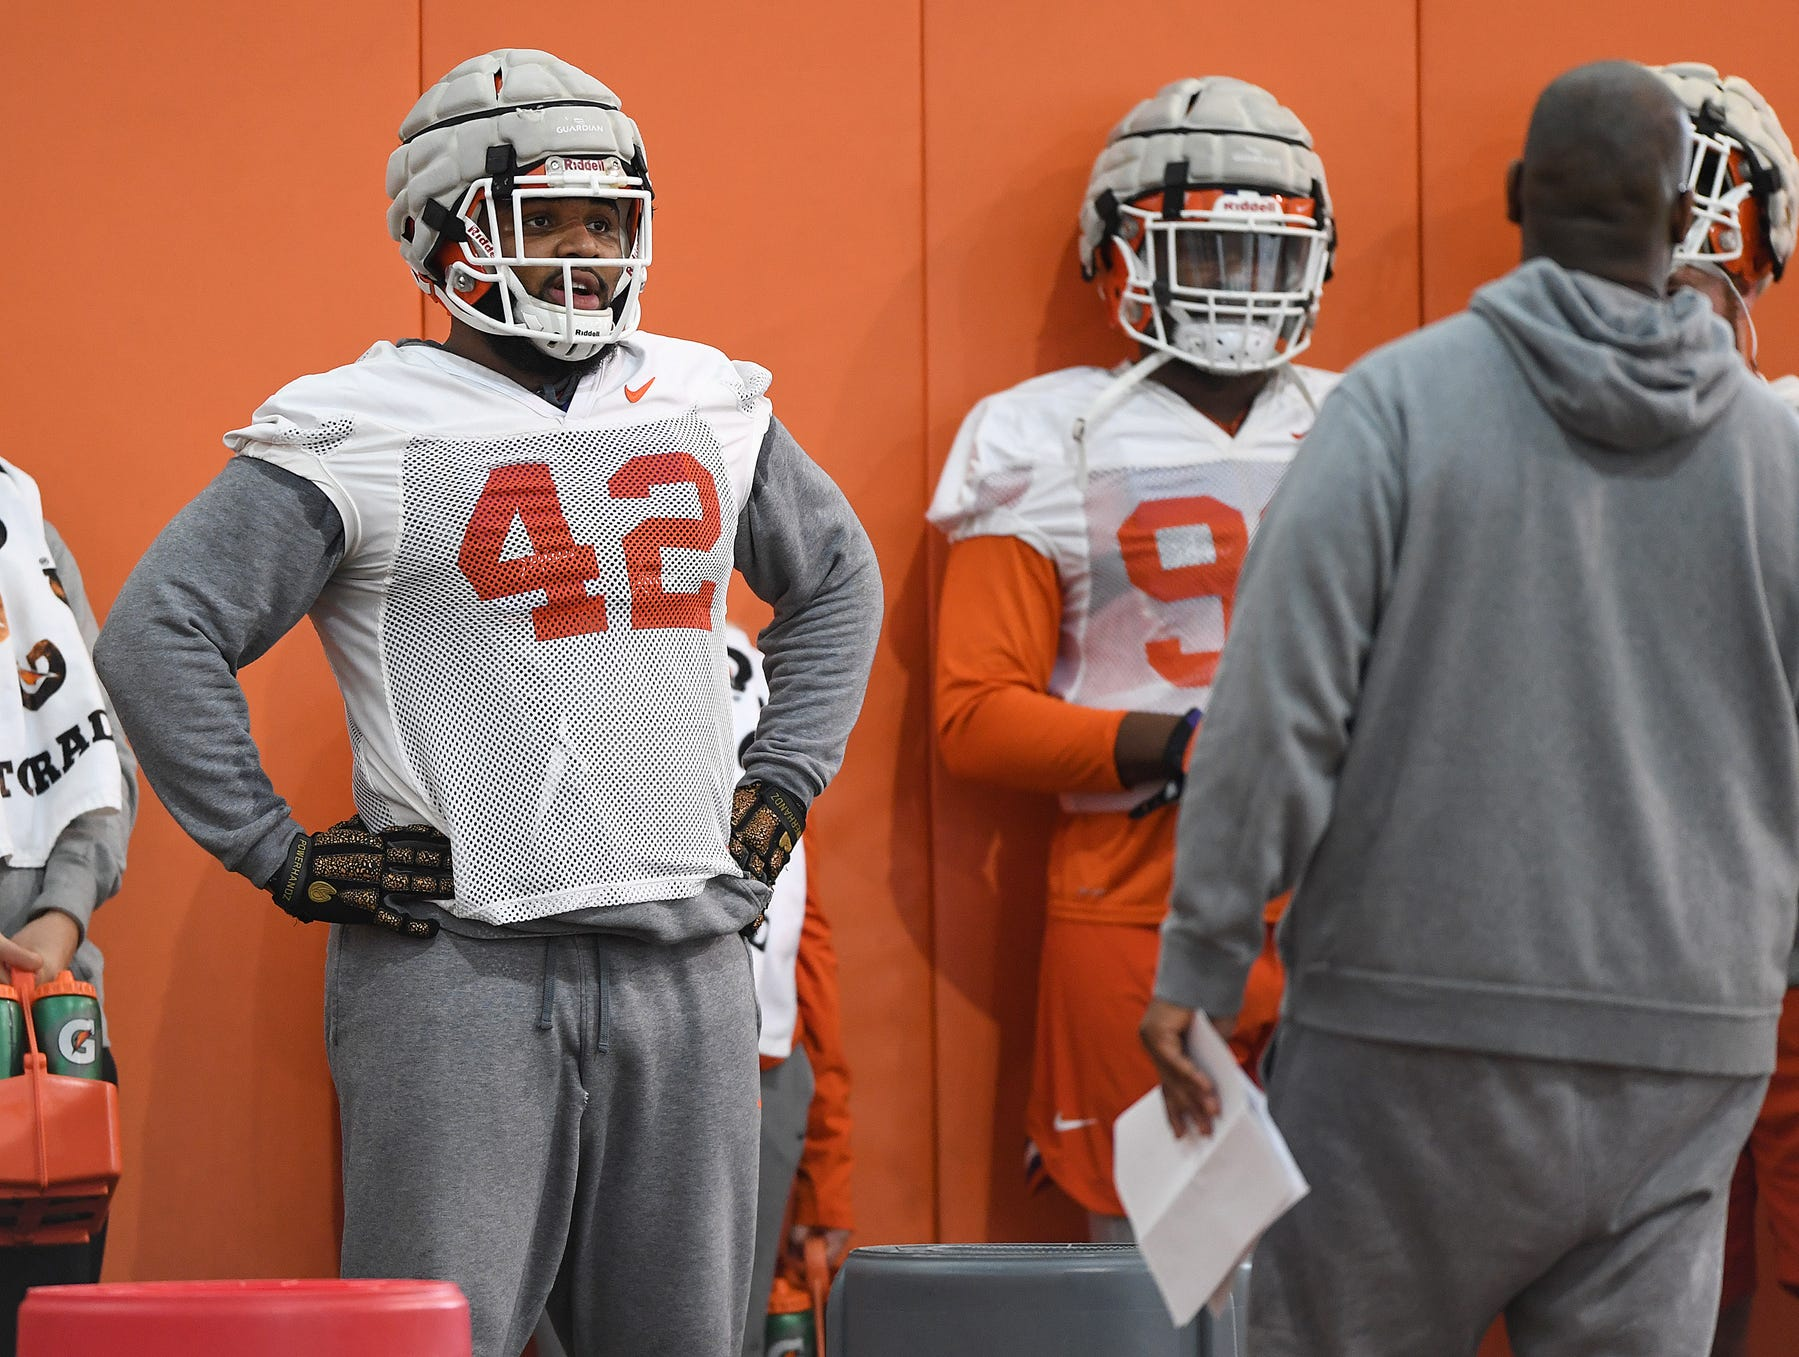 Clemson defensive lineman Christian Wilkins (42) during the Tigers Cotton Bowl practice on Wednesday, December 12, 2018.